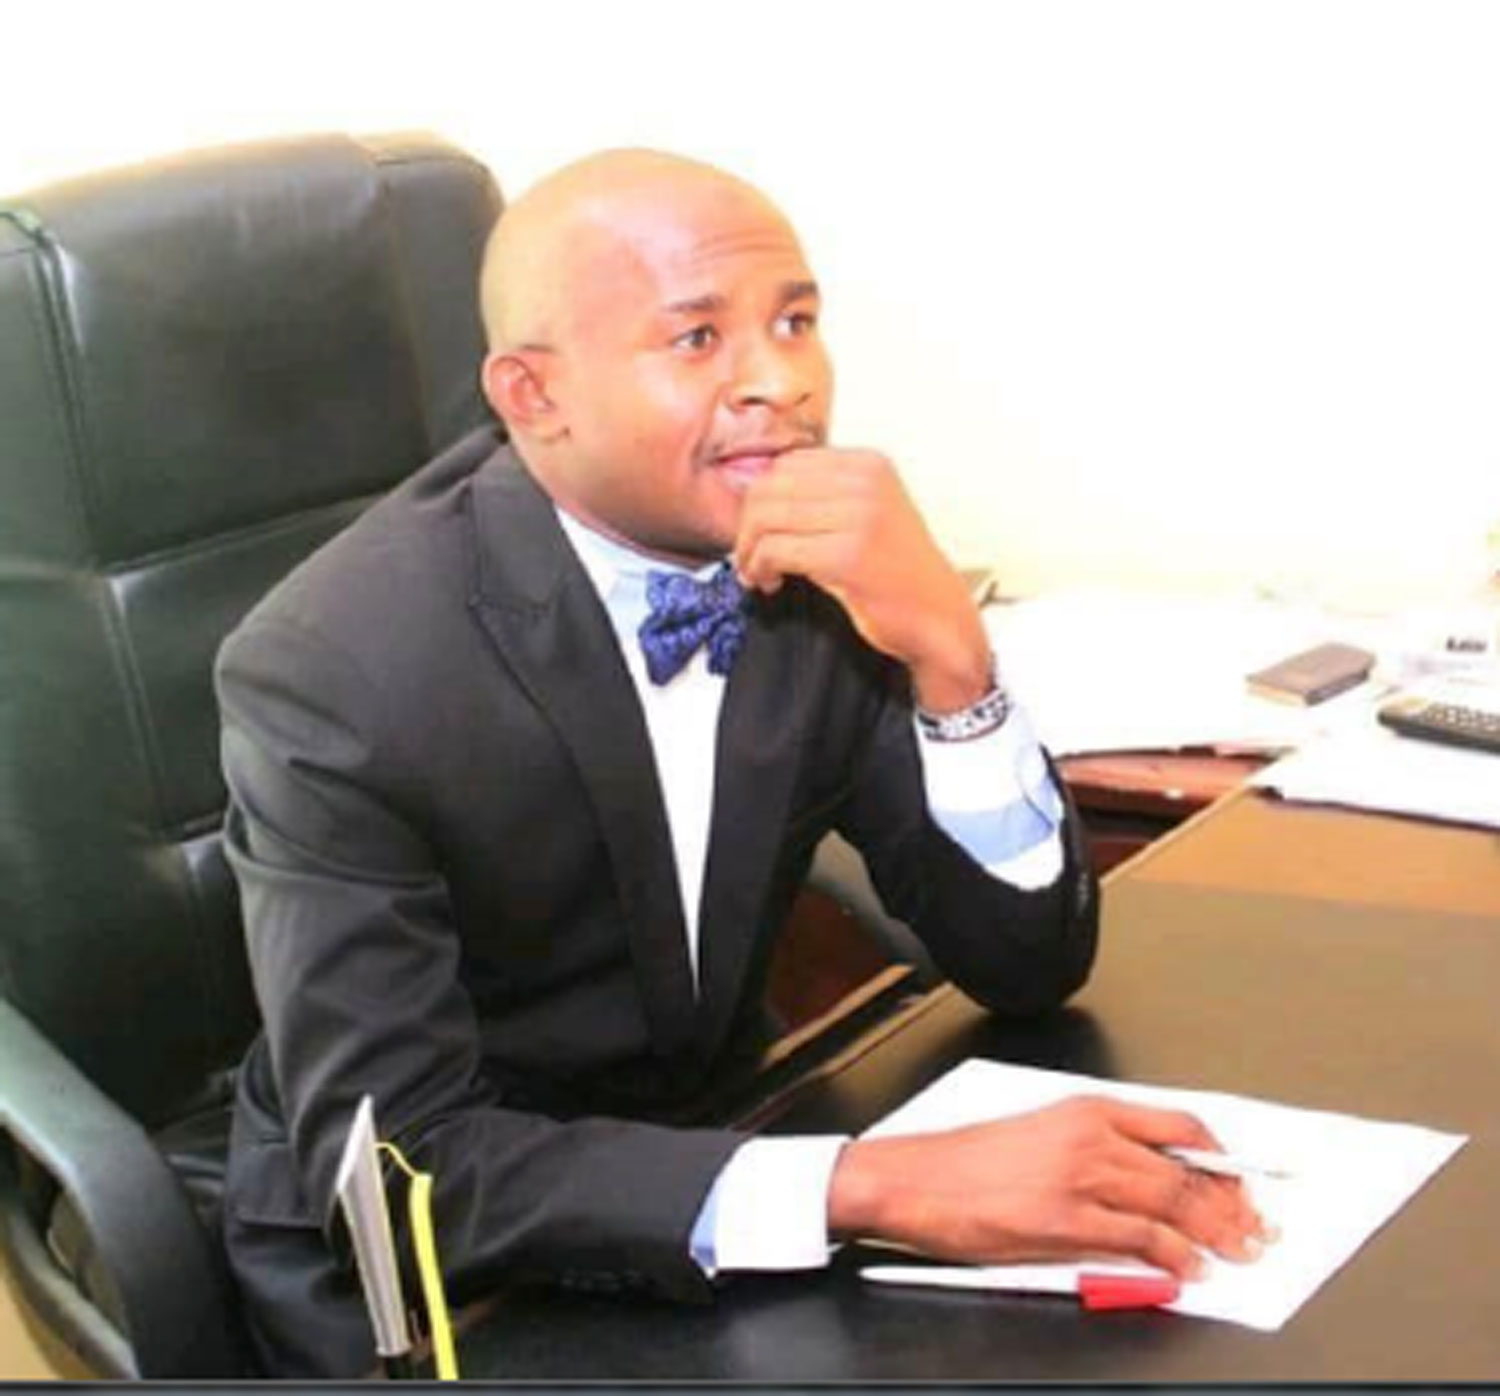 Lawyers set agenda for new NBA president-elect, Akpata